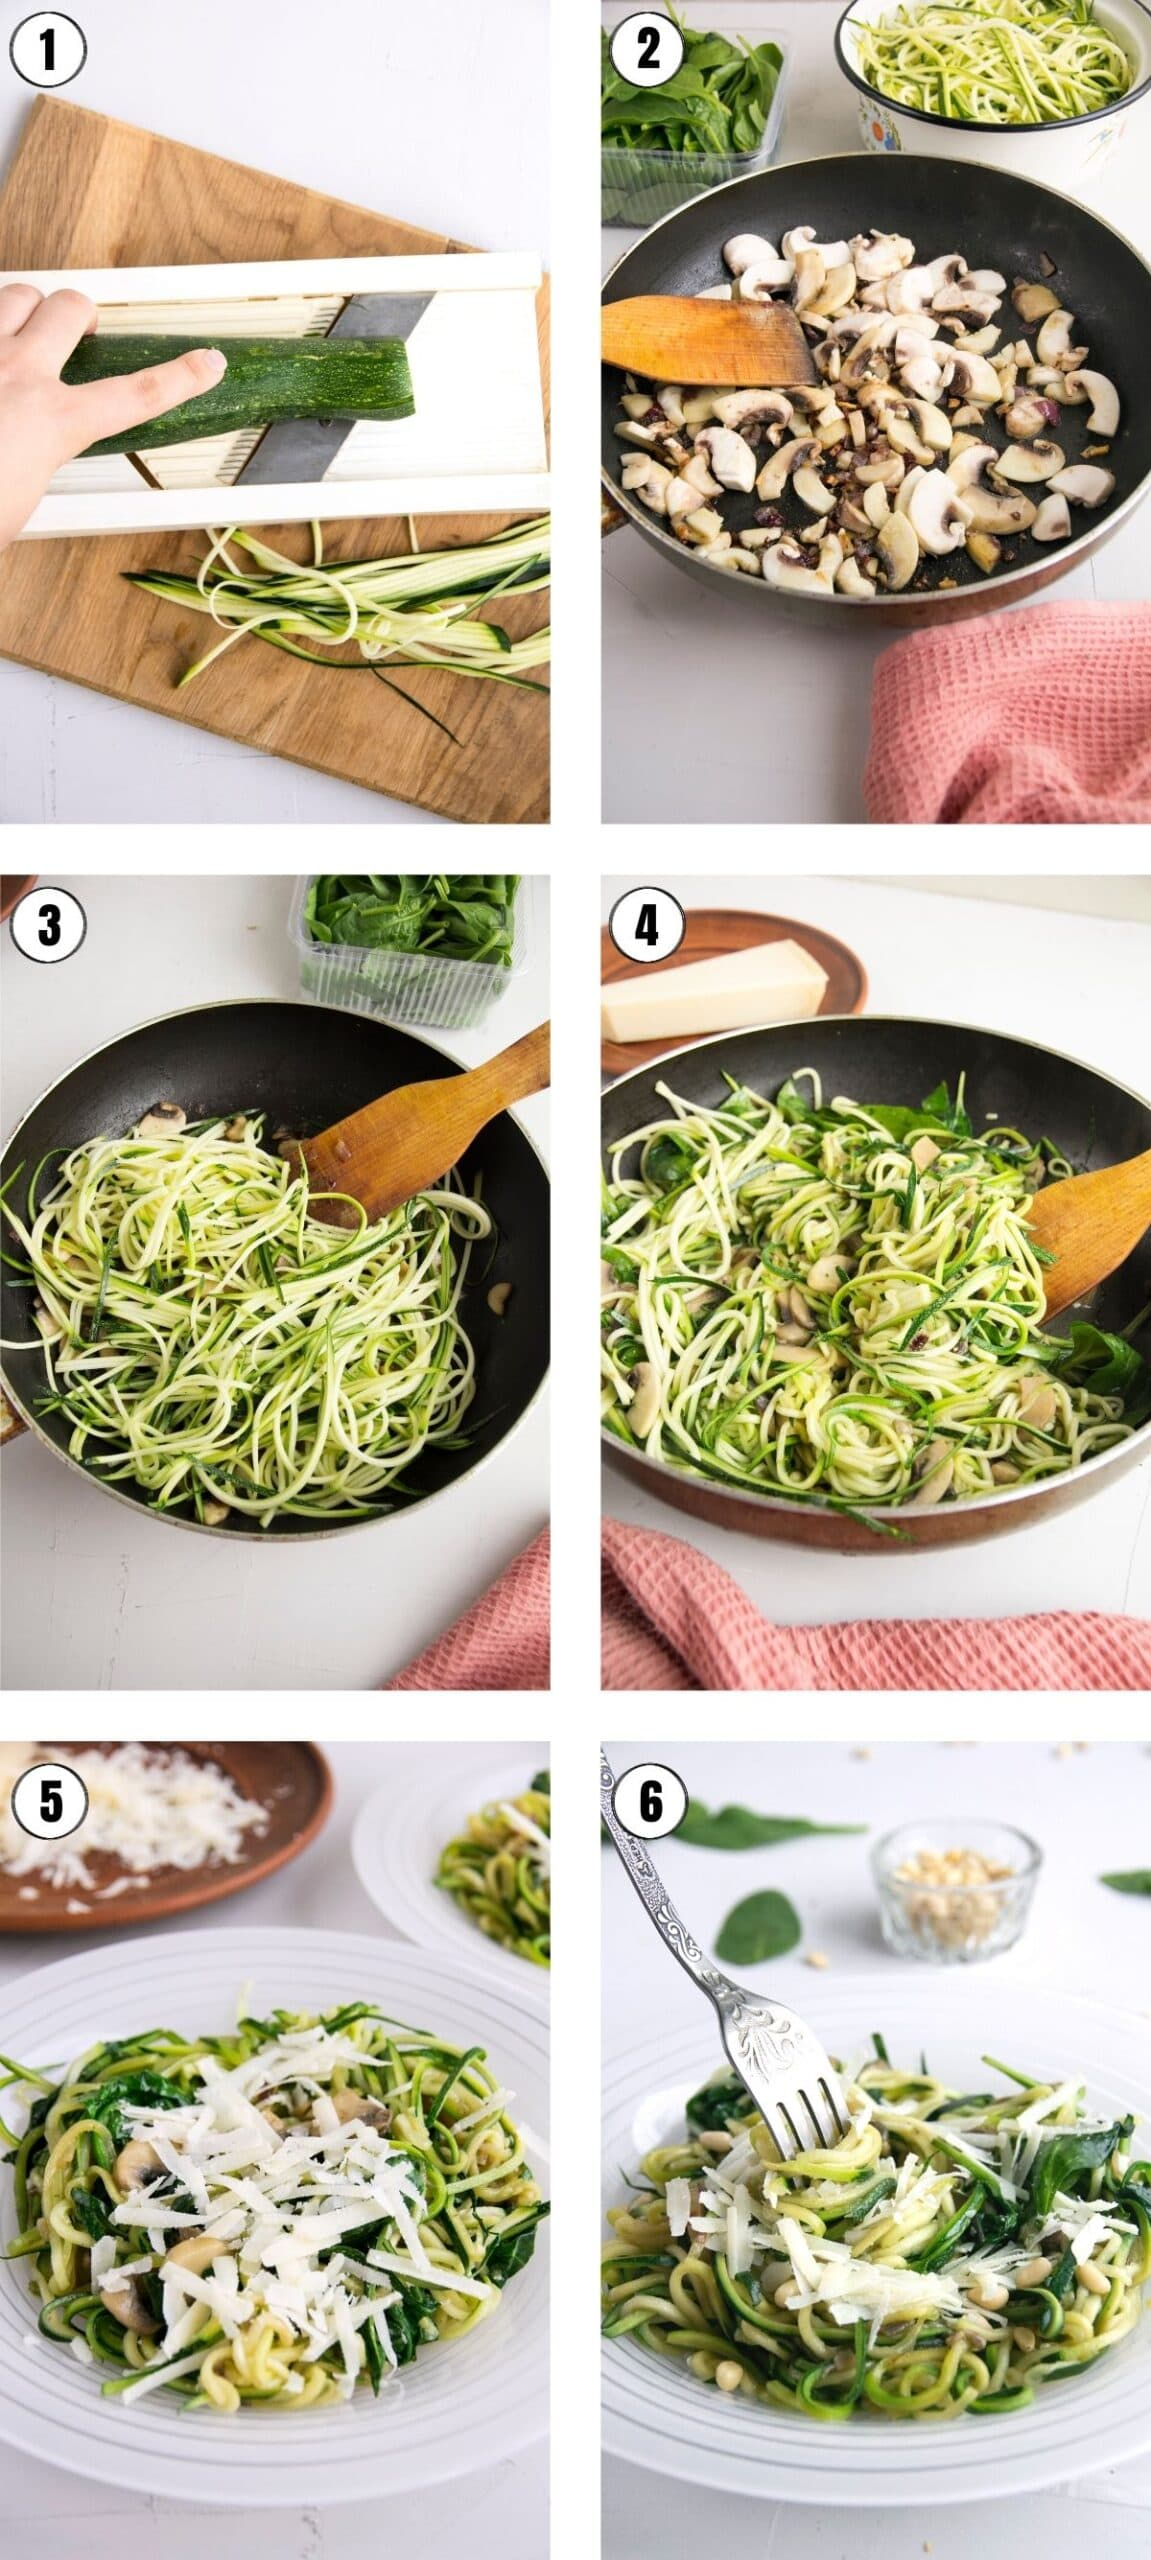 Easy recipe steps for how to make zucchini noodles.